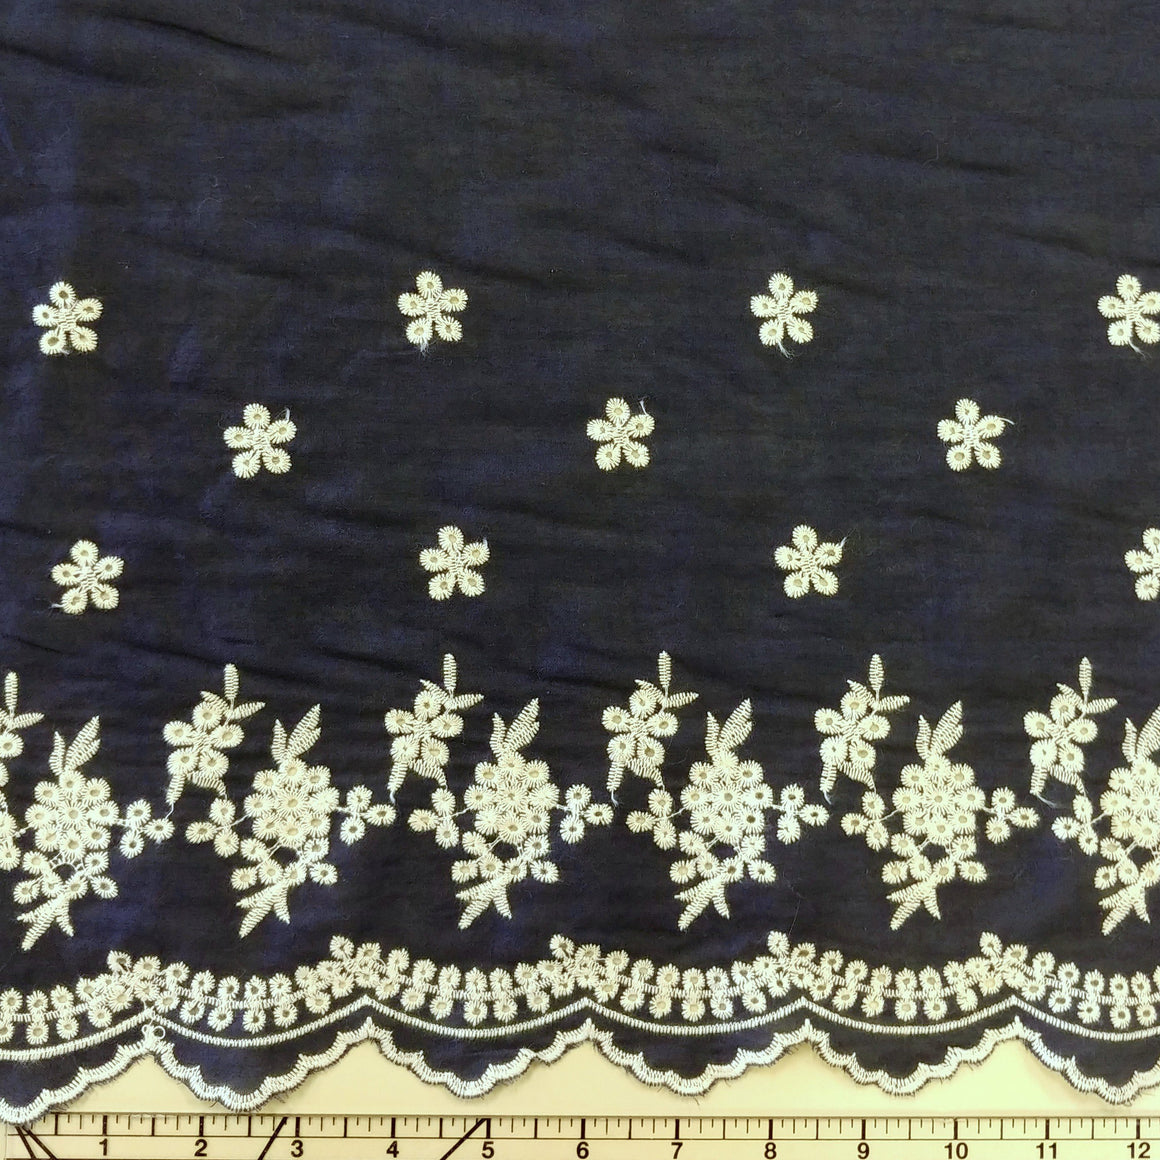 Navy Blue and Cream Embroidered Scallop Edge Lawn, 1 yard